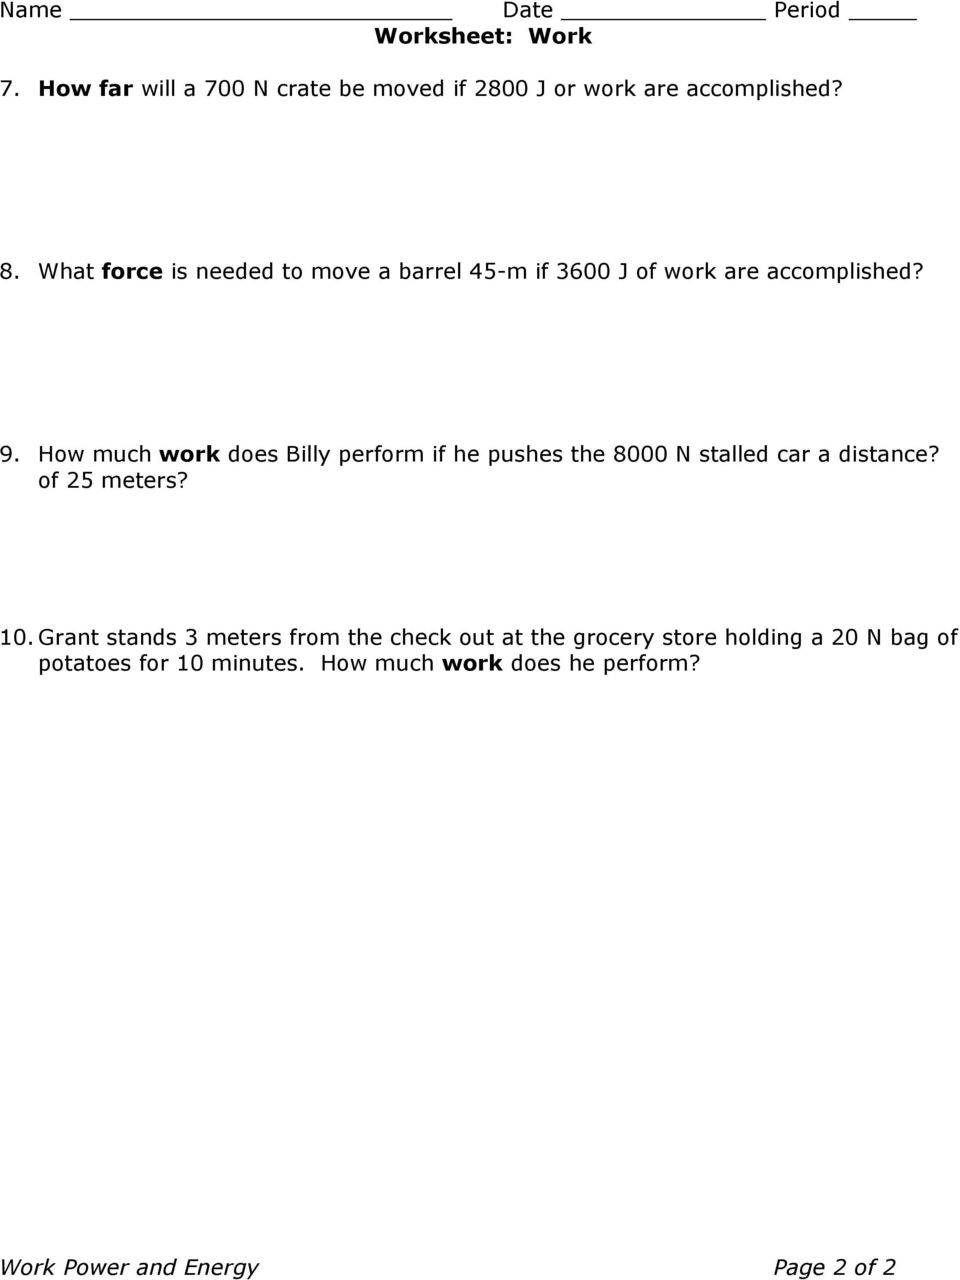 Name Period WORKSHEET KINETIC AND POTENTIAL ENERGY PROBLEMS 1 – Calculating Work Worksheet